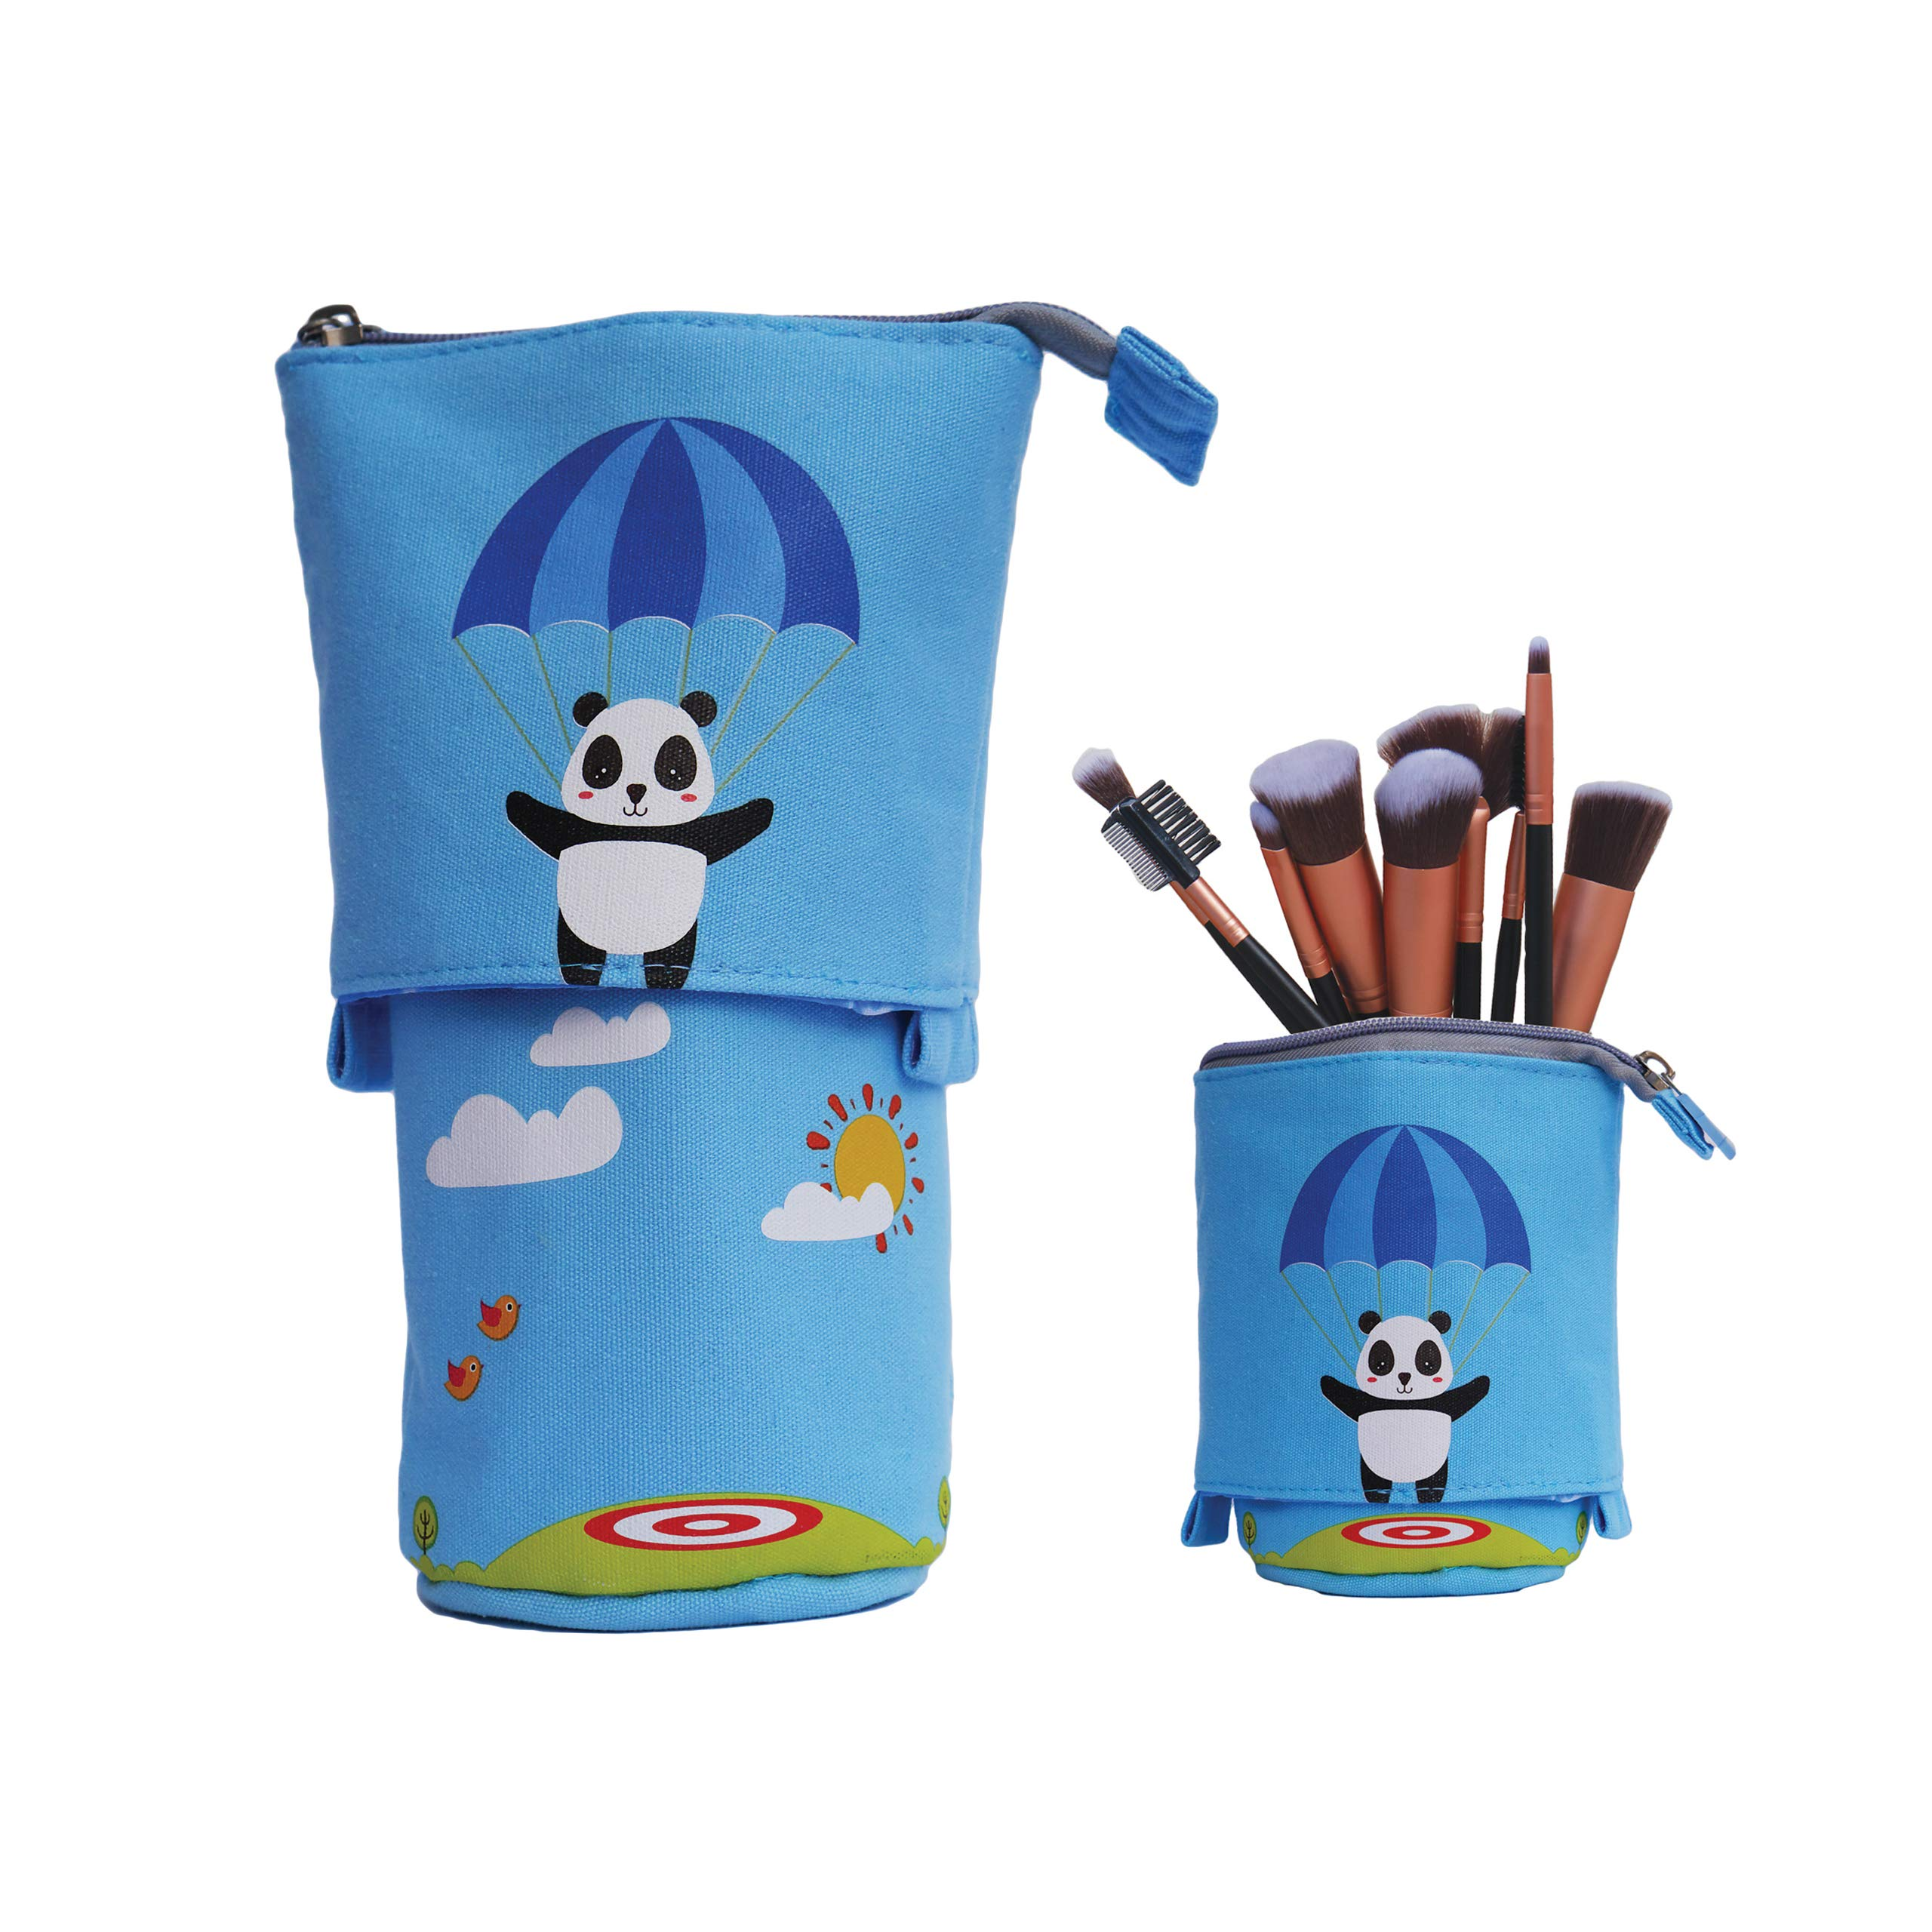 Telescopic Slidable Panda Design Case for Stationery Pencils Pens Makeup iPhone/Android Phones Gadget Accessories Pouch (Sky Blue 2)